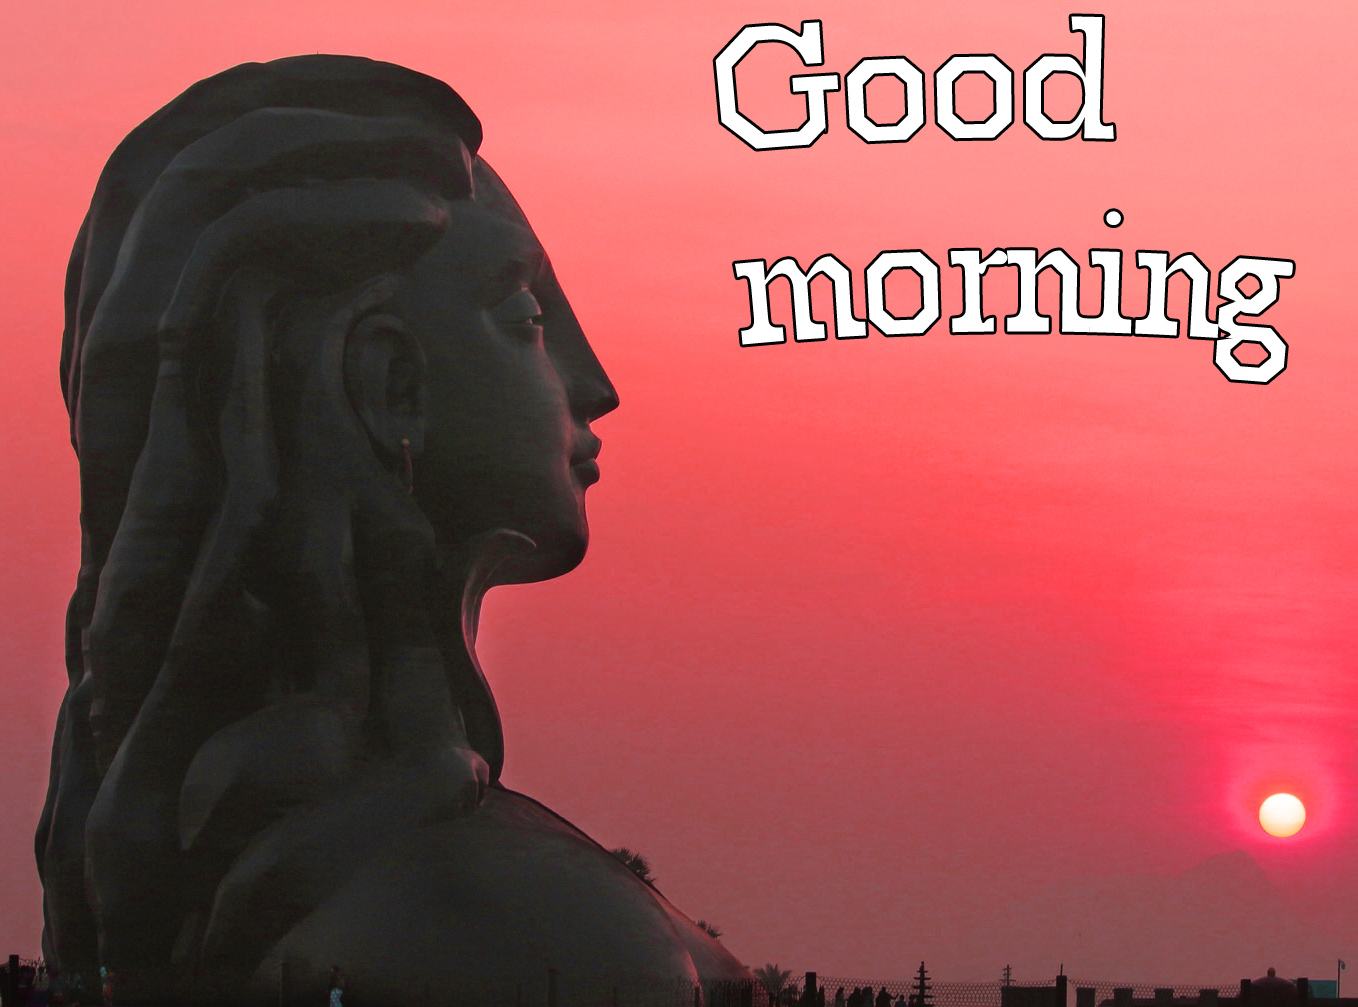 LORD SHIVA GOOD MORNING WISHES IMAGES WALLPAPER PHOTO DOWNLOAD